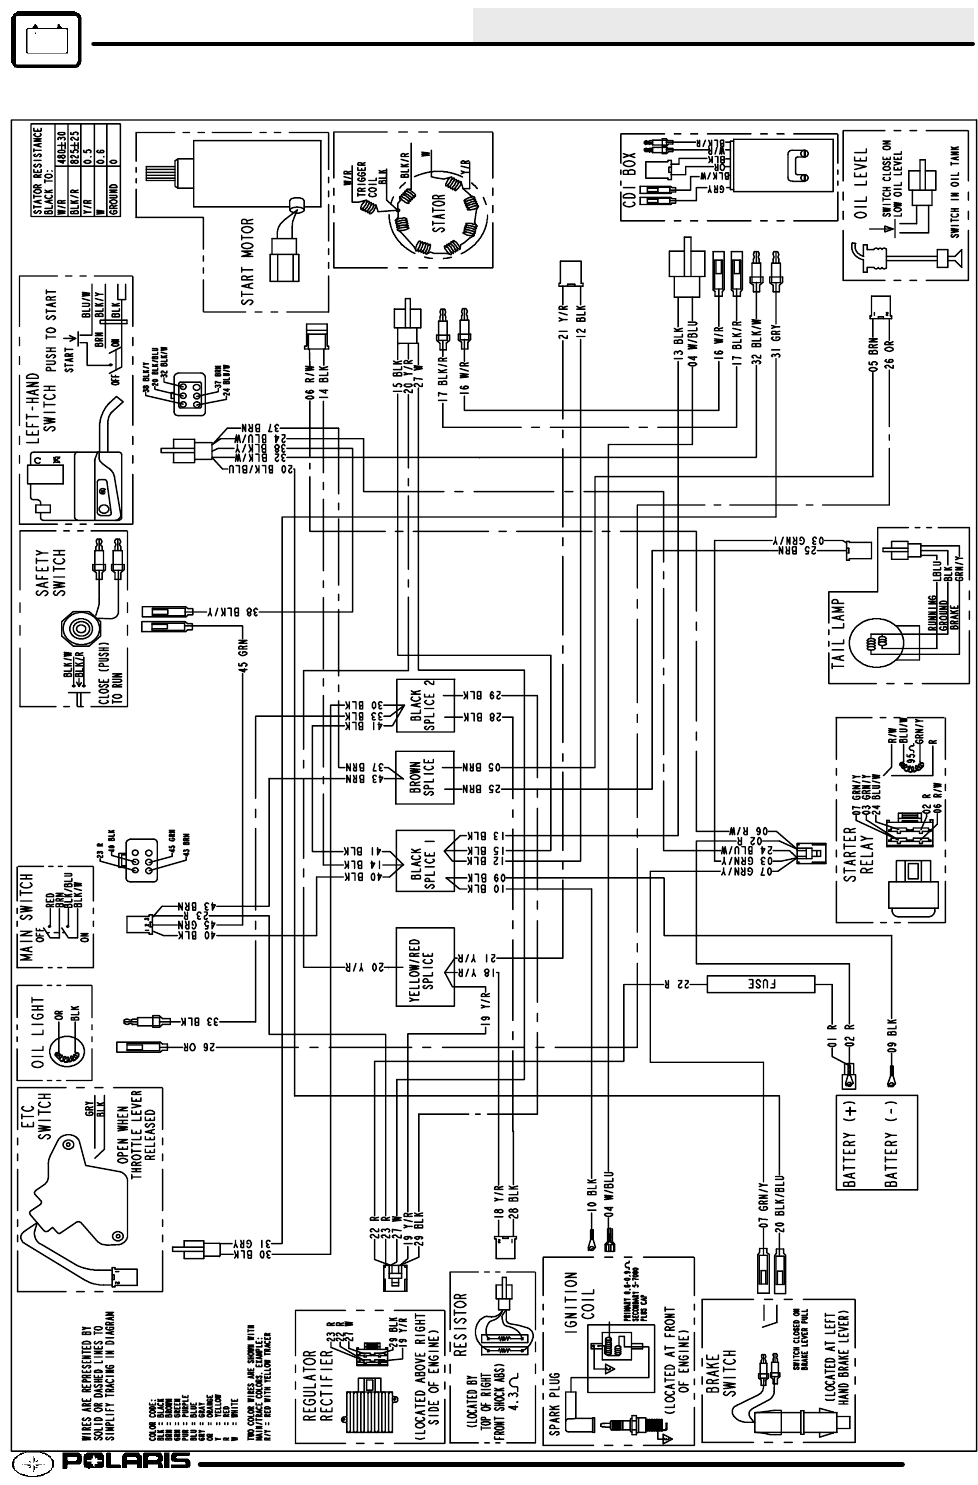 small resolution of polaris predator wiring diagram wiring diagram name wiring diagram polaris ranger 800 wiring diagram polaris